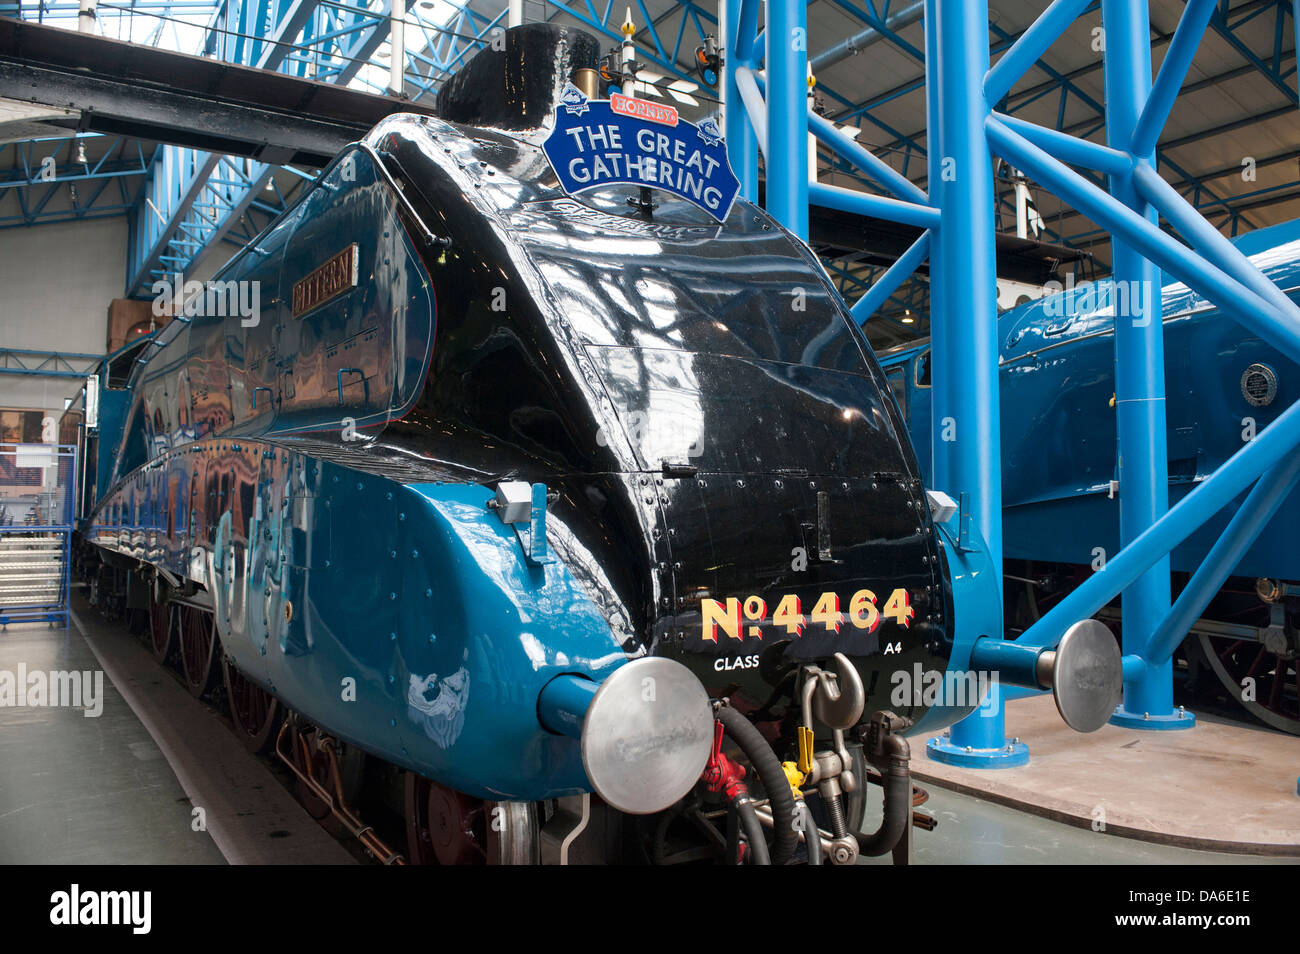 Great Gathering of A4 class steam locomotives at National Railway museum York - Stock Image